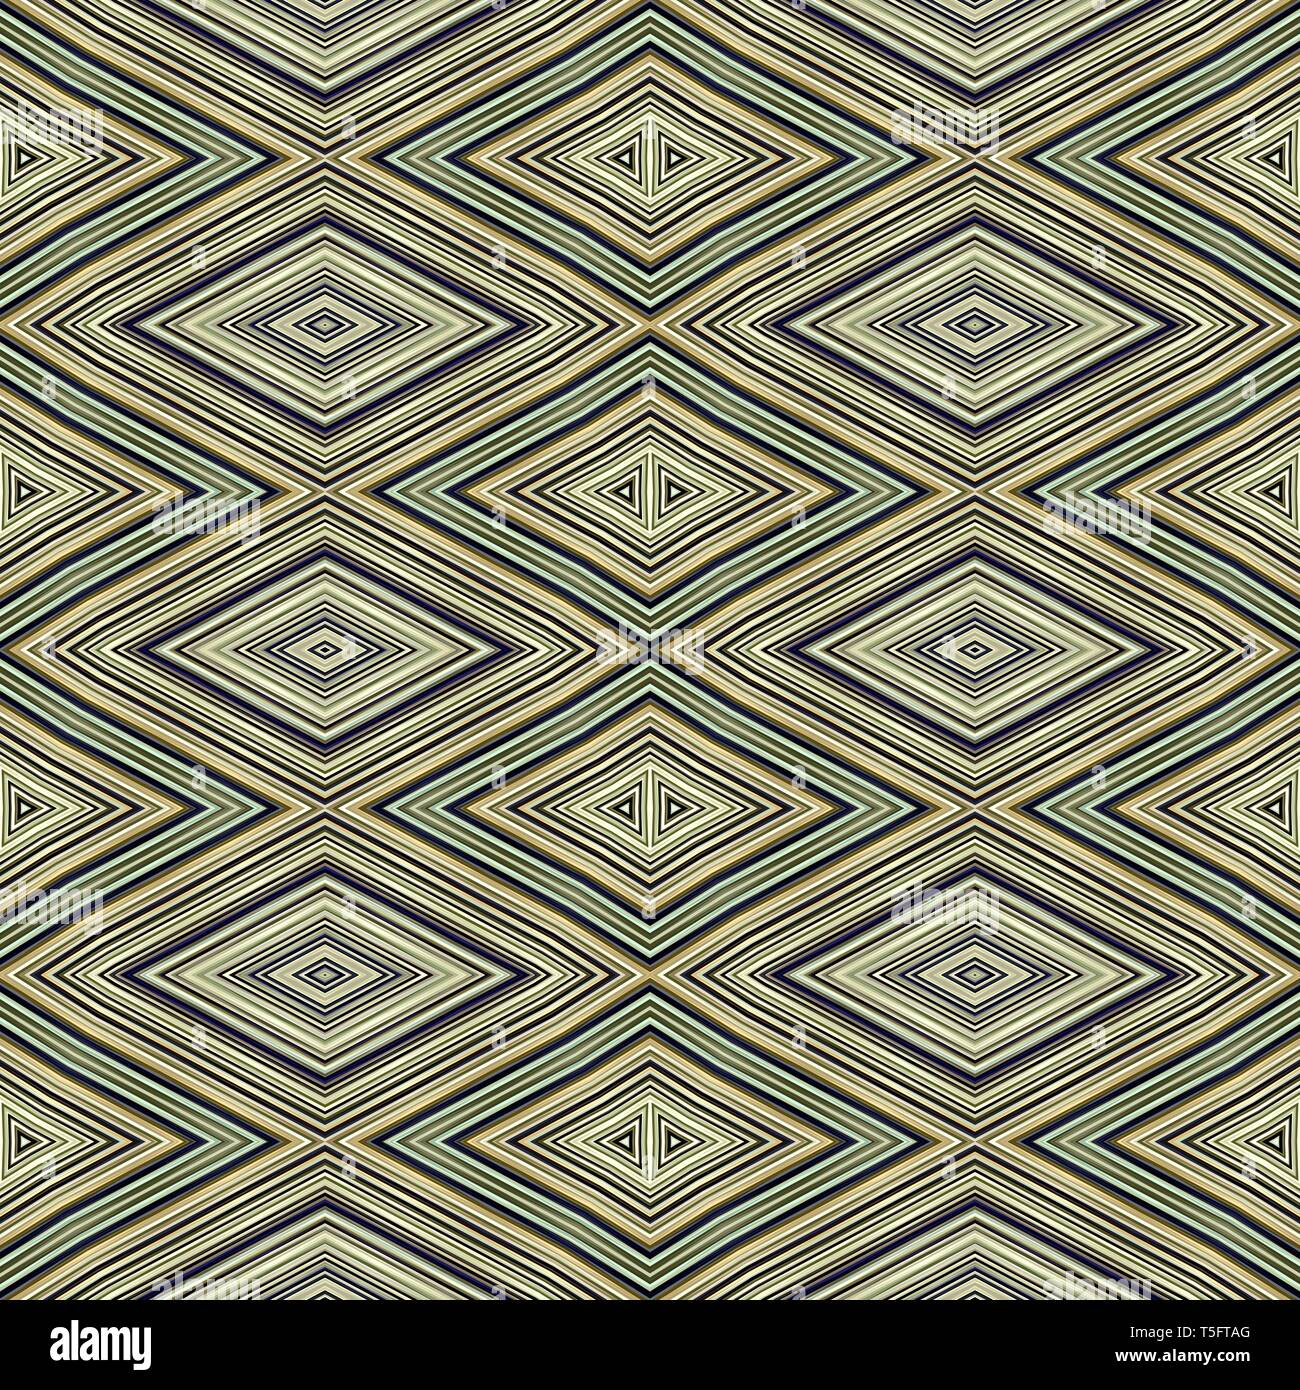 Seamless Diamond Pattern With Olive Green Black Colors Repeating